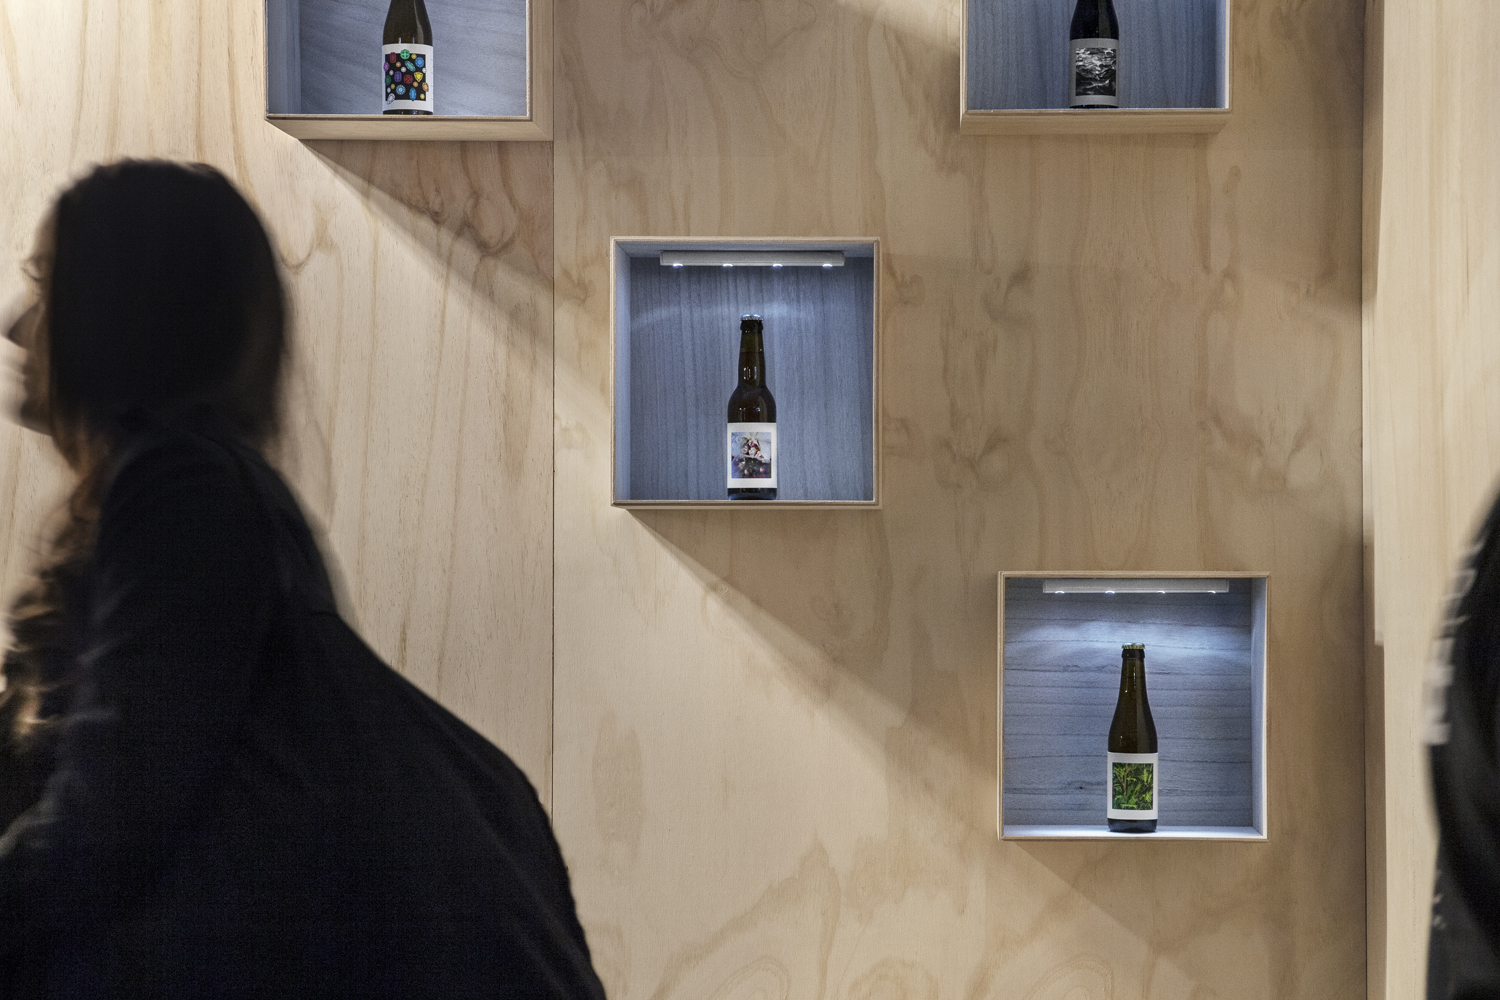 Pop-up bar for O/O Brewing designed by Emma Magnusson and Angelina Kjellén with signage by Lundgren+Lindqvist